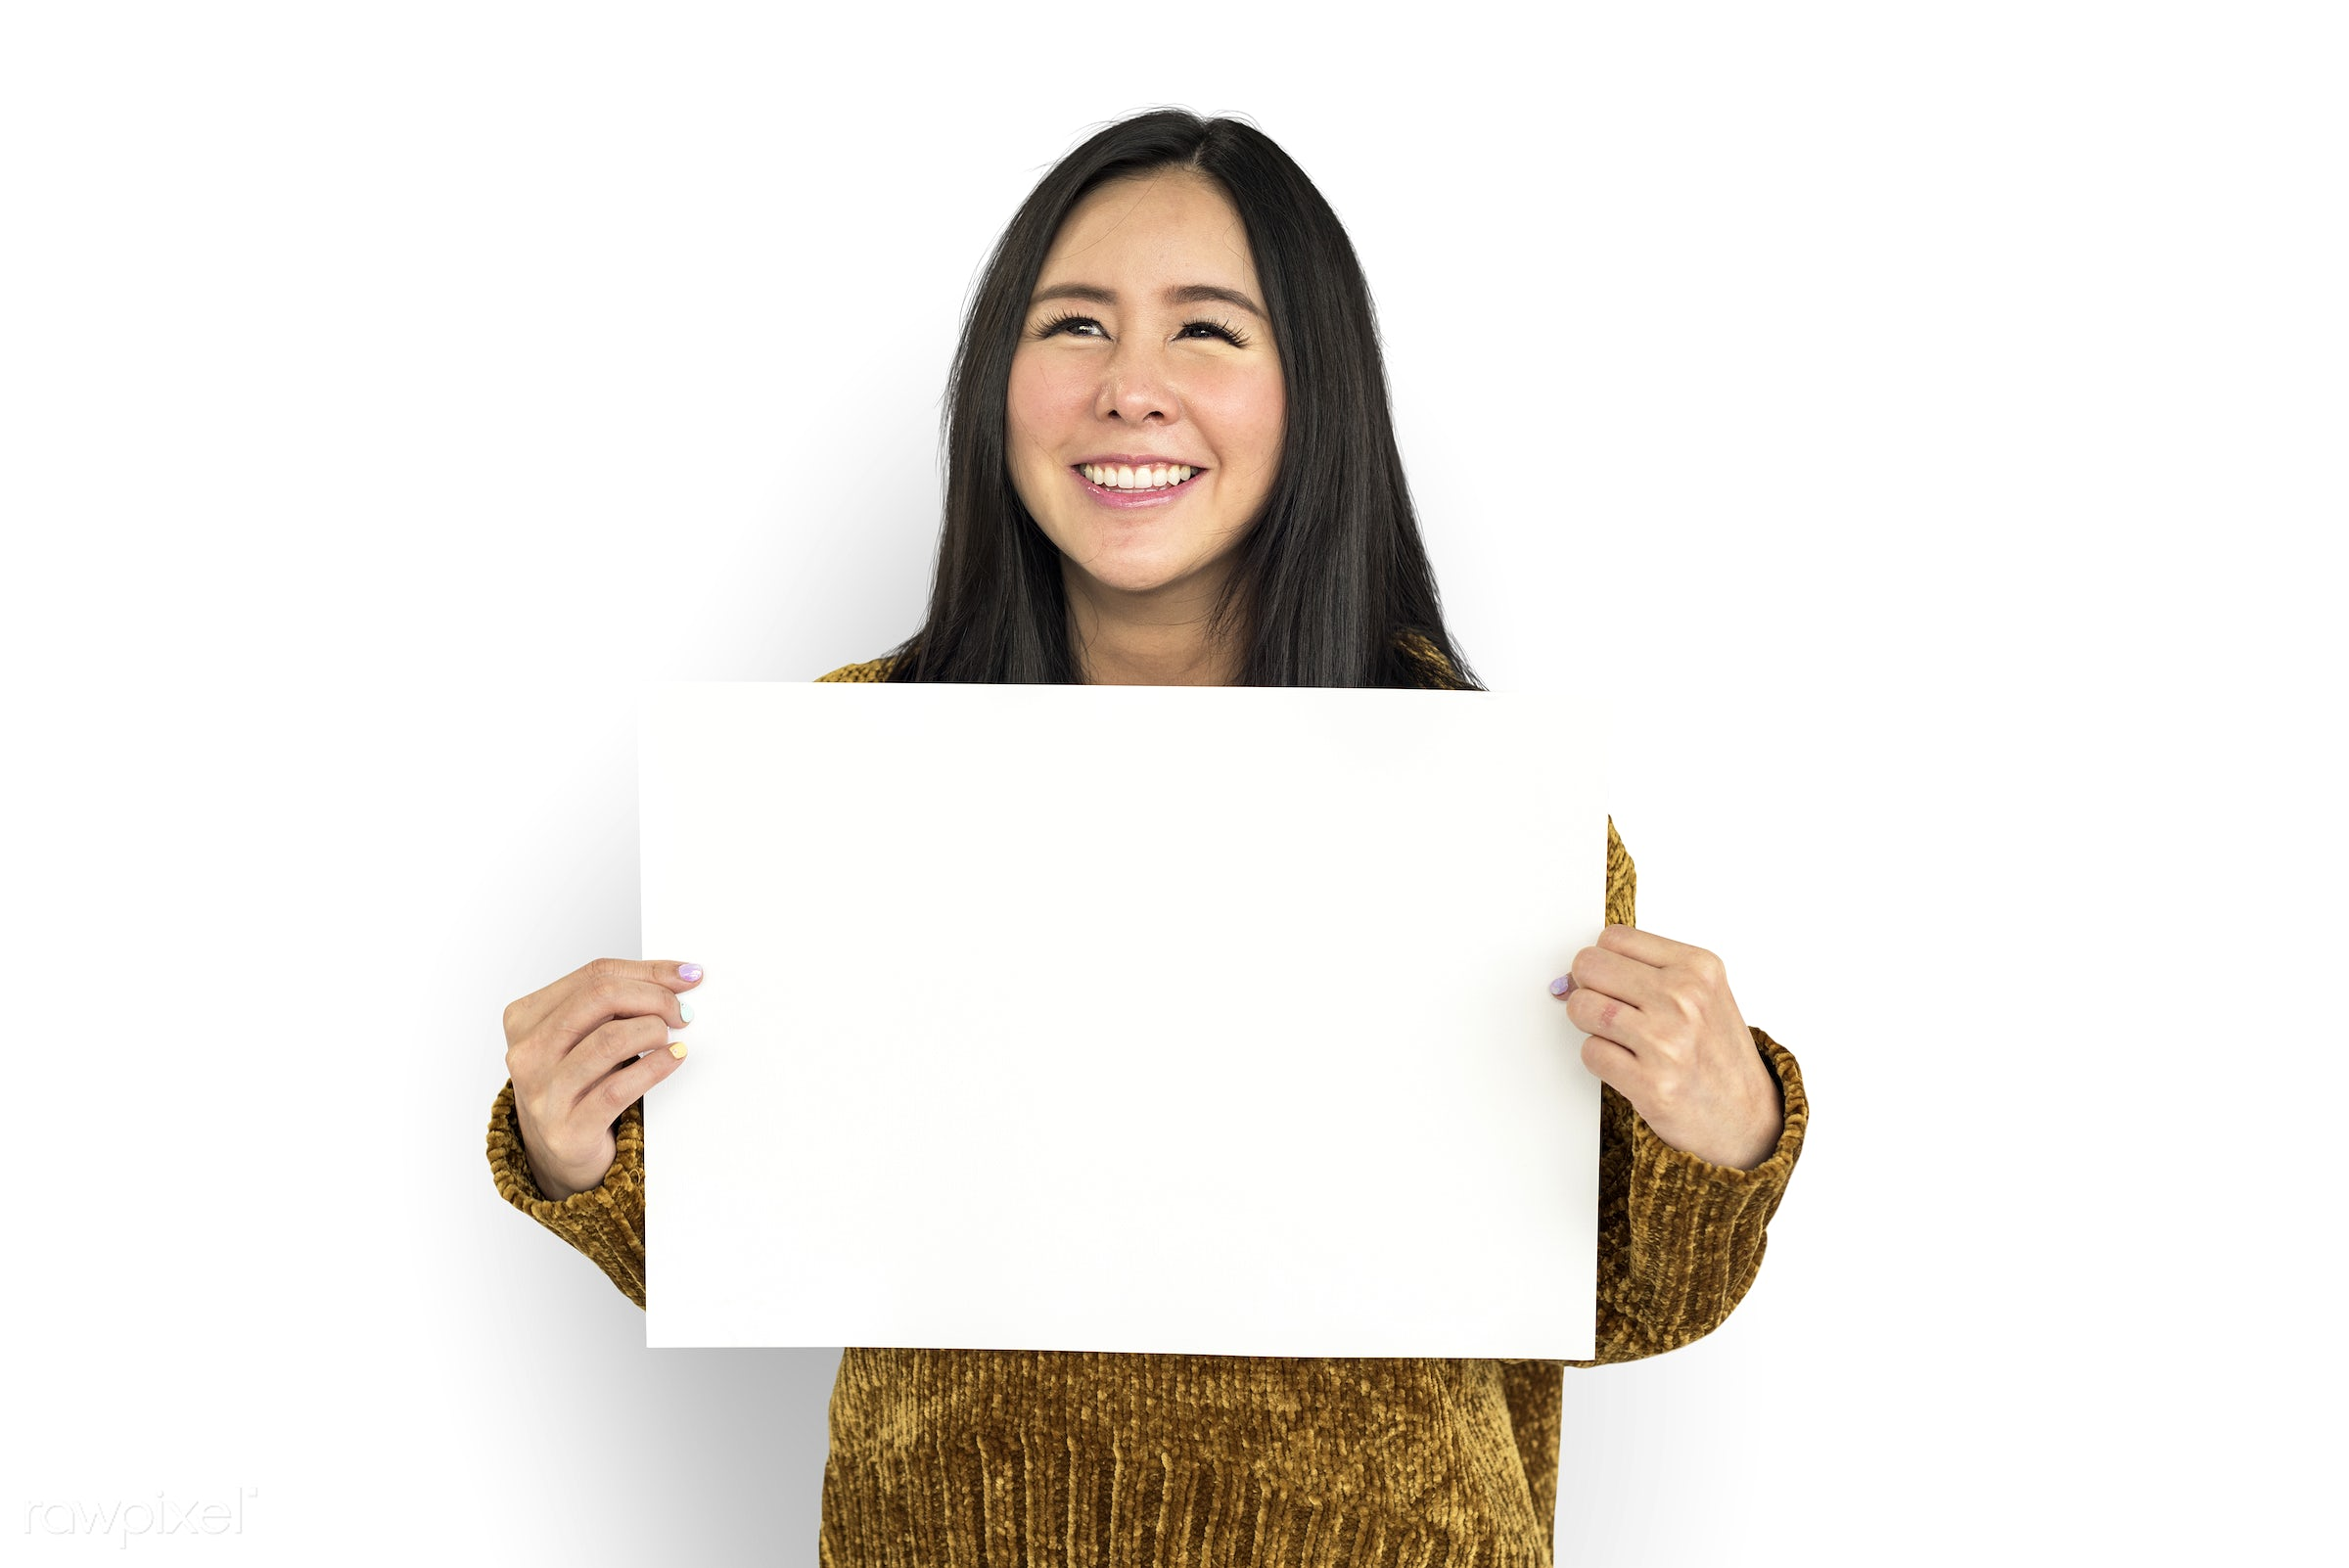 studio, expression, person, illustration, placard, woman, smiling, isolated, creative, white, image, symbolic, happiness,...